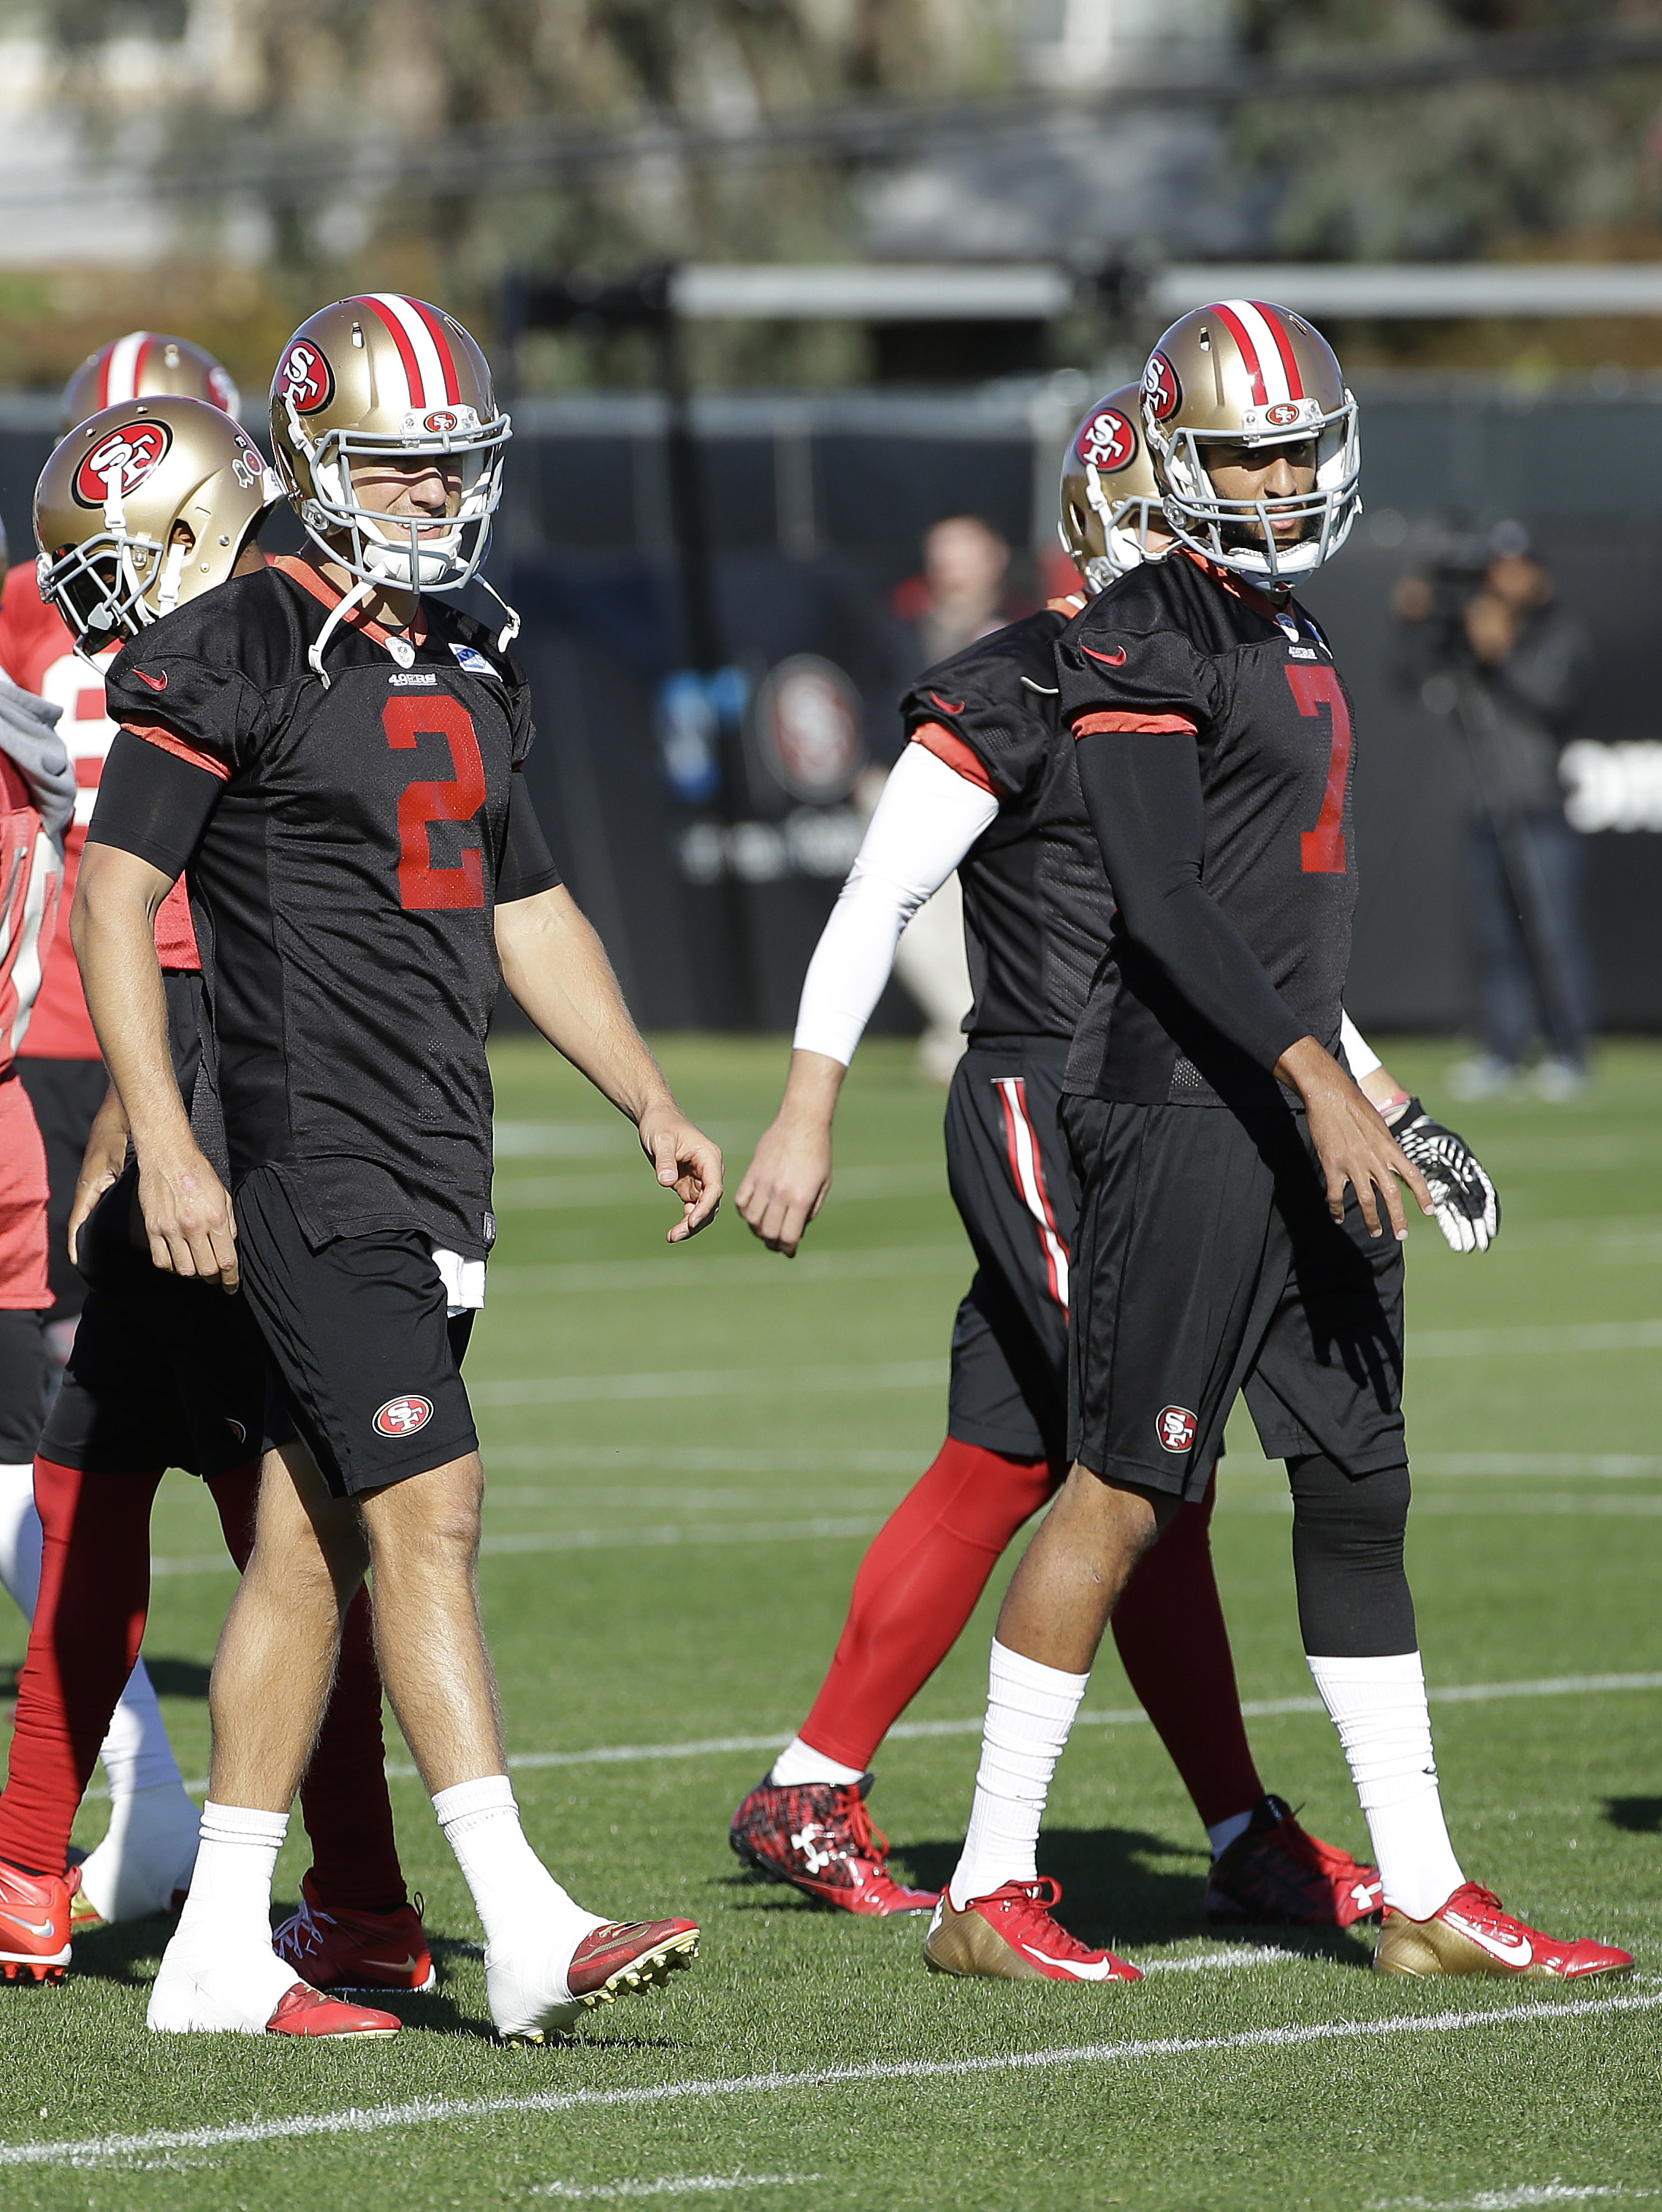 San Francisco 49ers quarterback Blaine Gabbert (2) and quarterback Colin Kaepernick (7) participate in drills during an NFL football practice in Santa Clara, Calif., Wednesday, Nov. 4, 2015. Head coach Jim Tomsula announced that the 49ers have officially